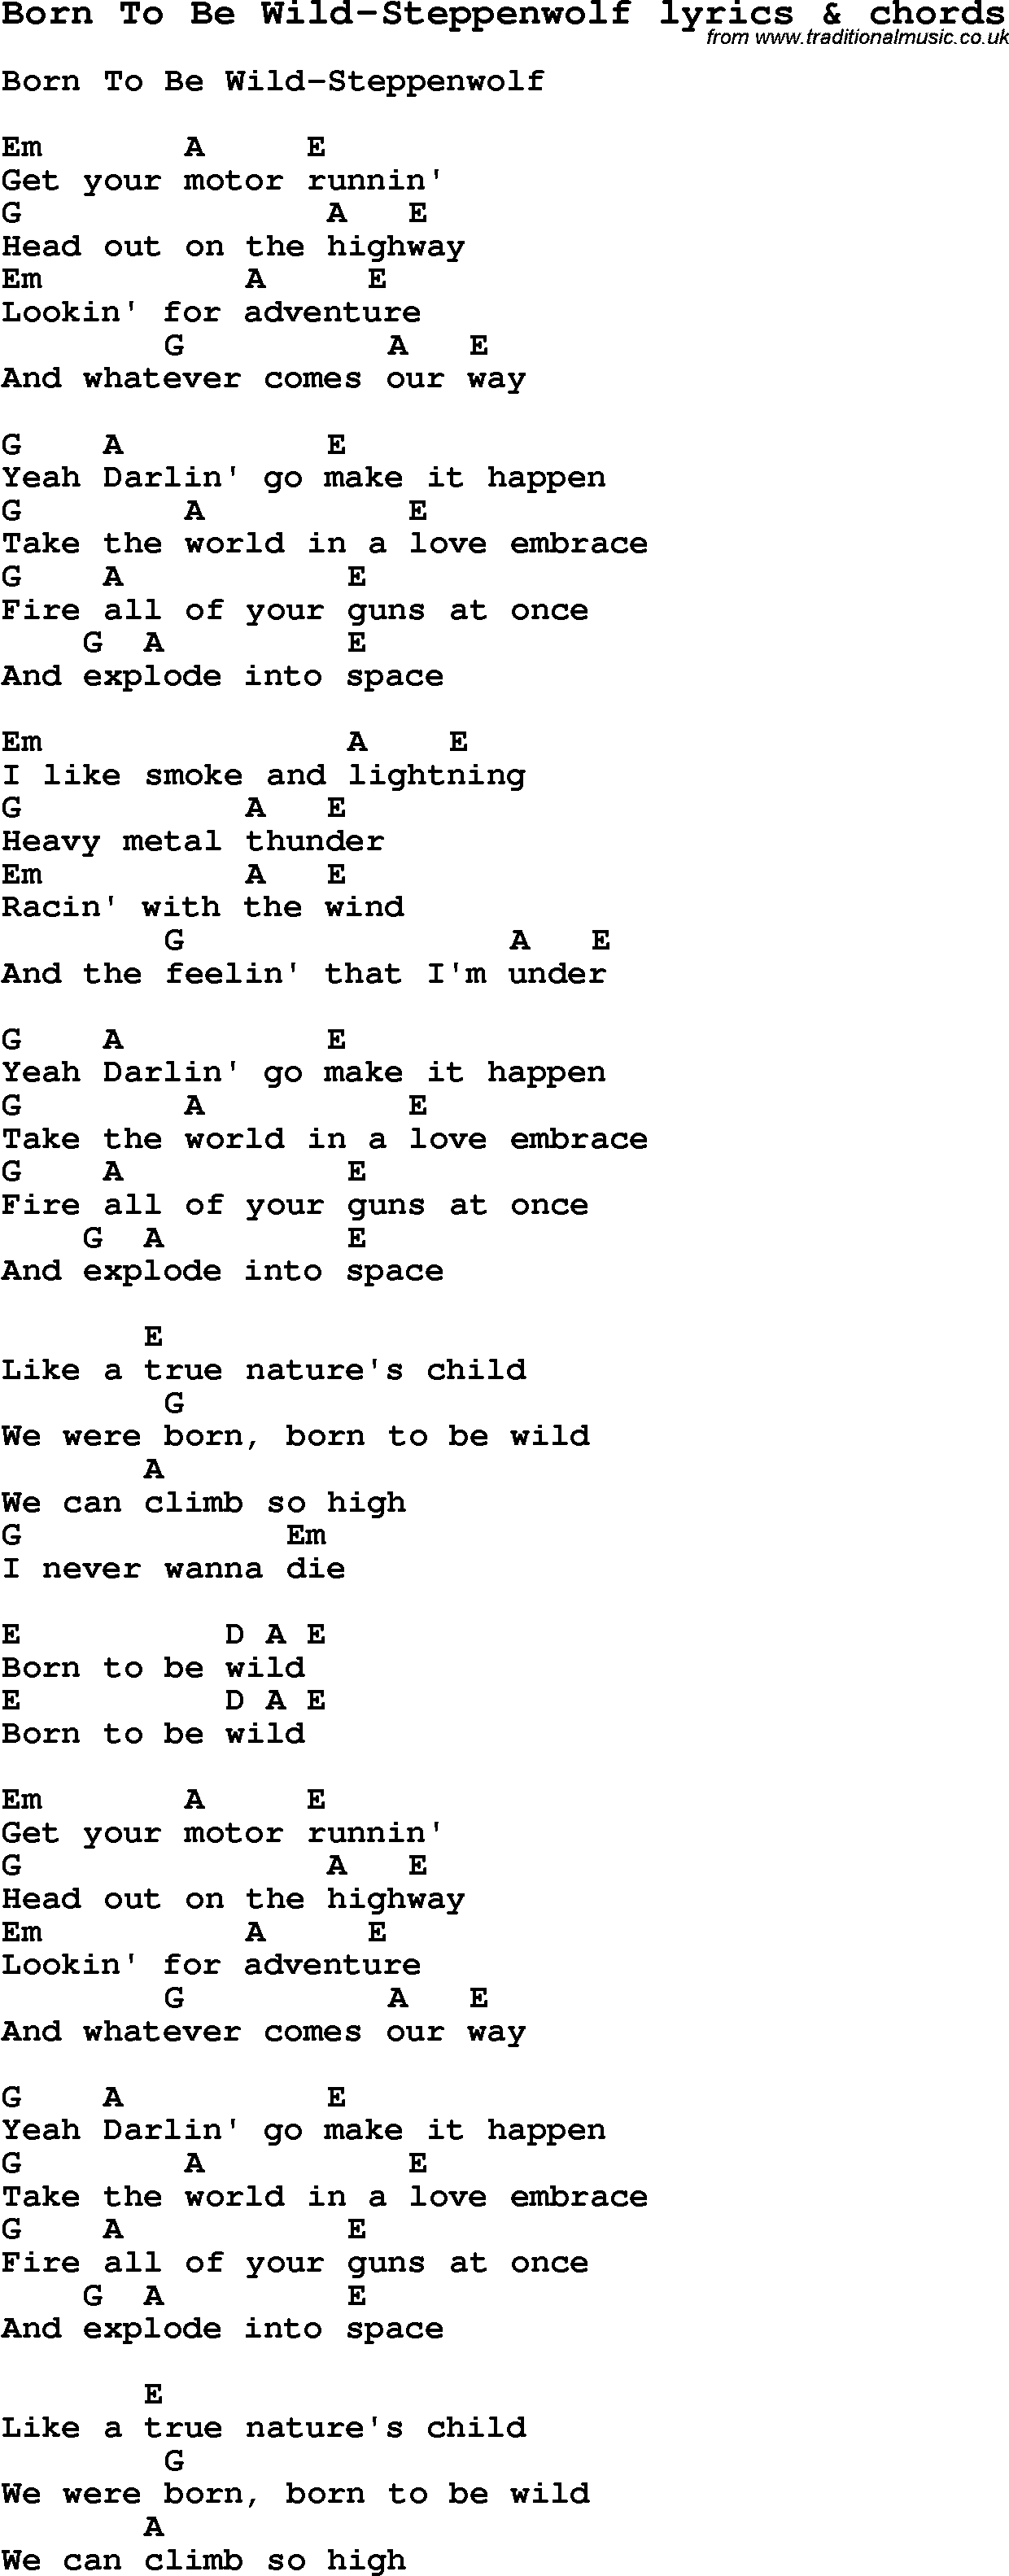 born to be wild lyrics